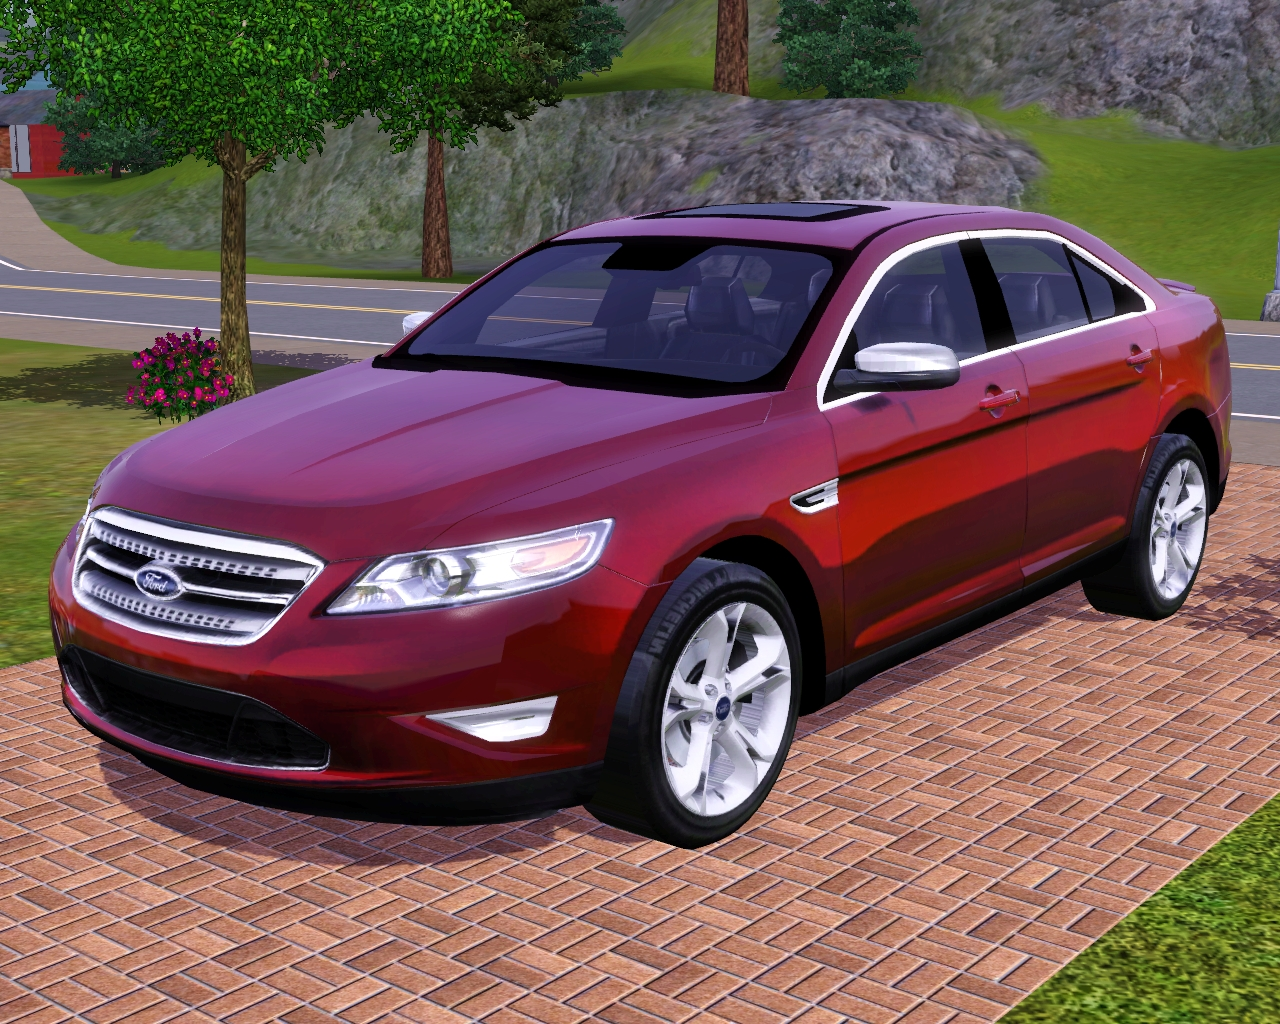 2010 Ford Taurus by Fresh-Prince